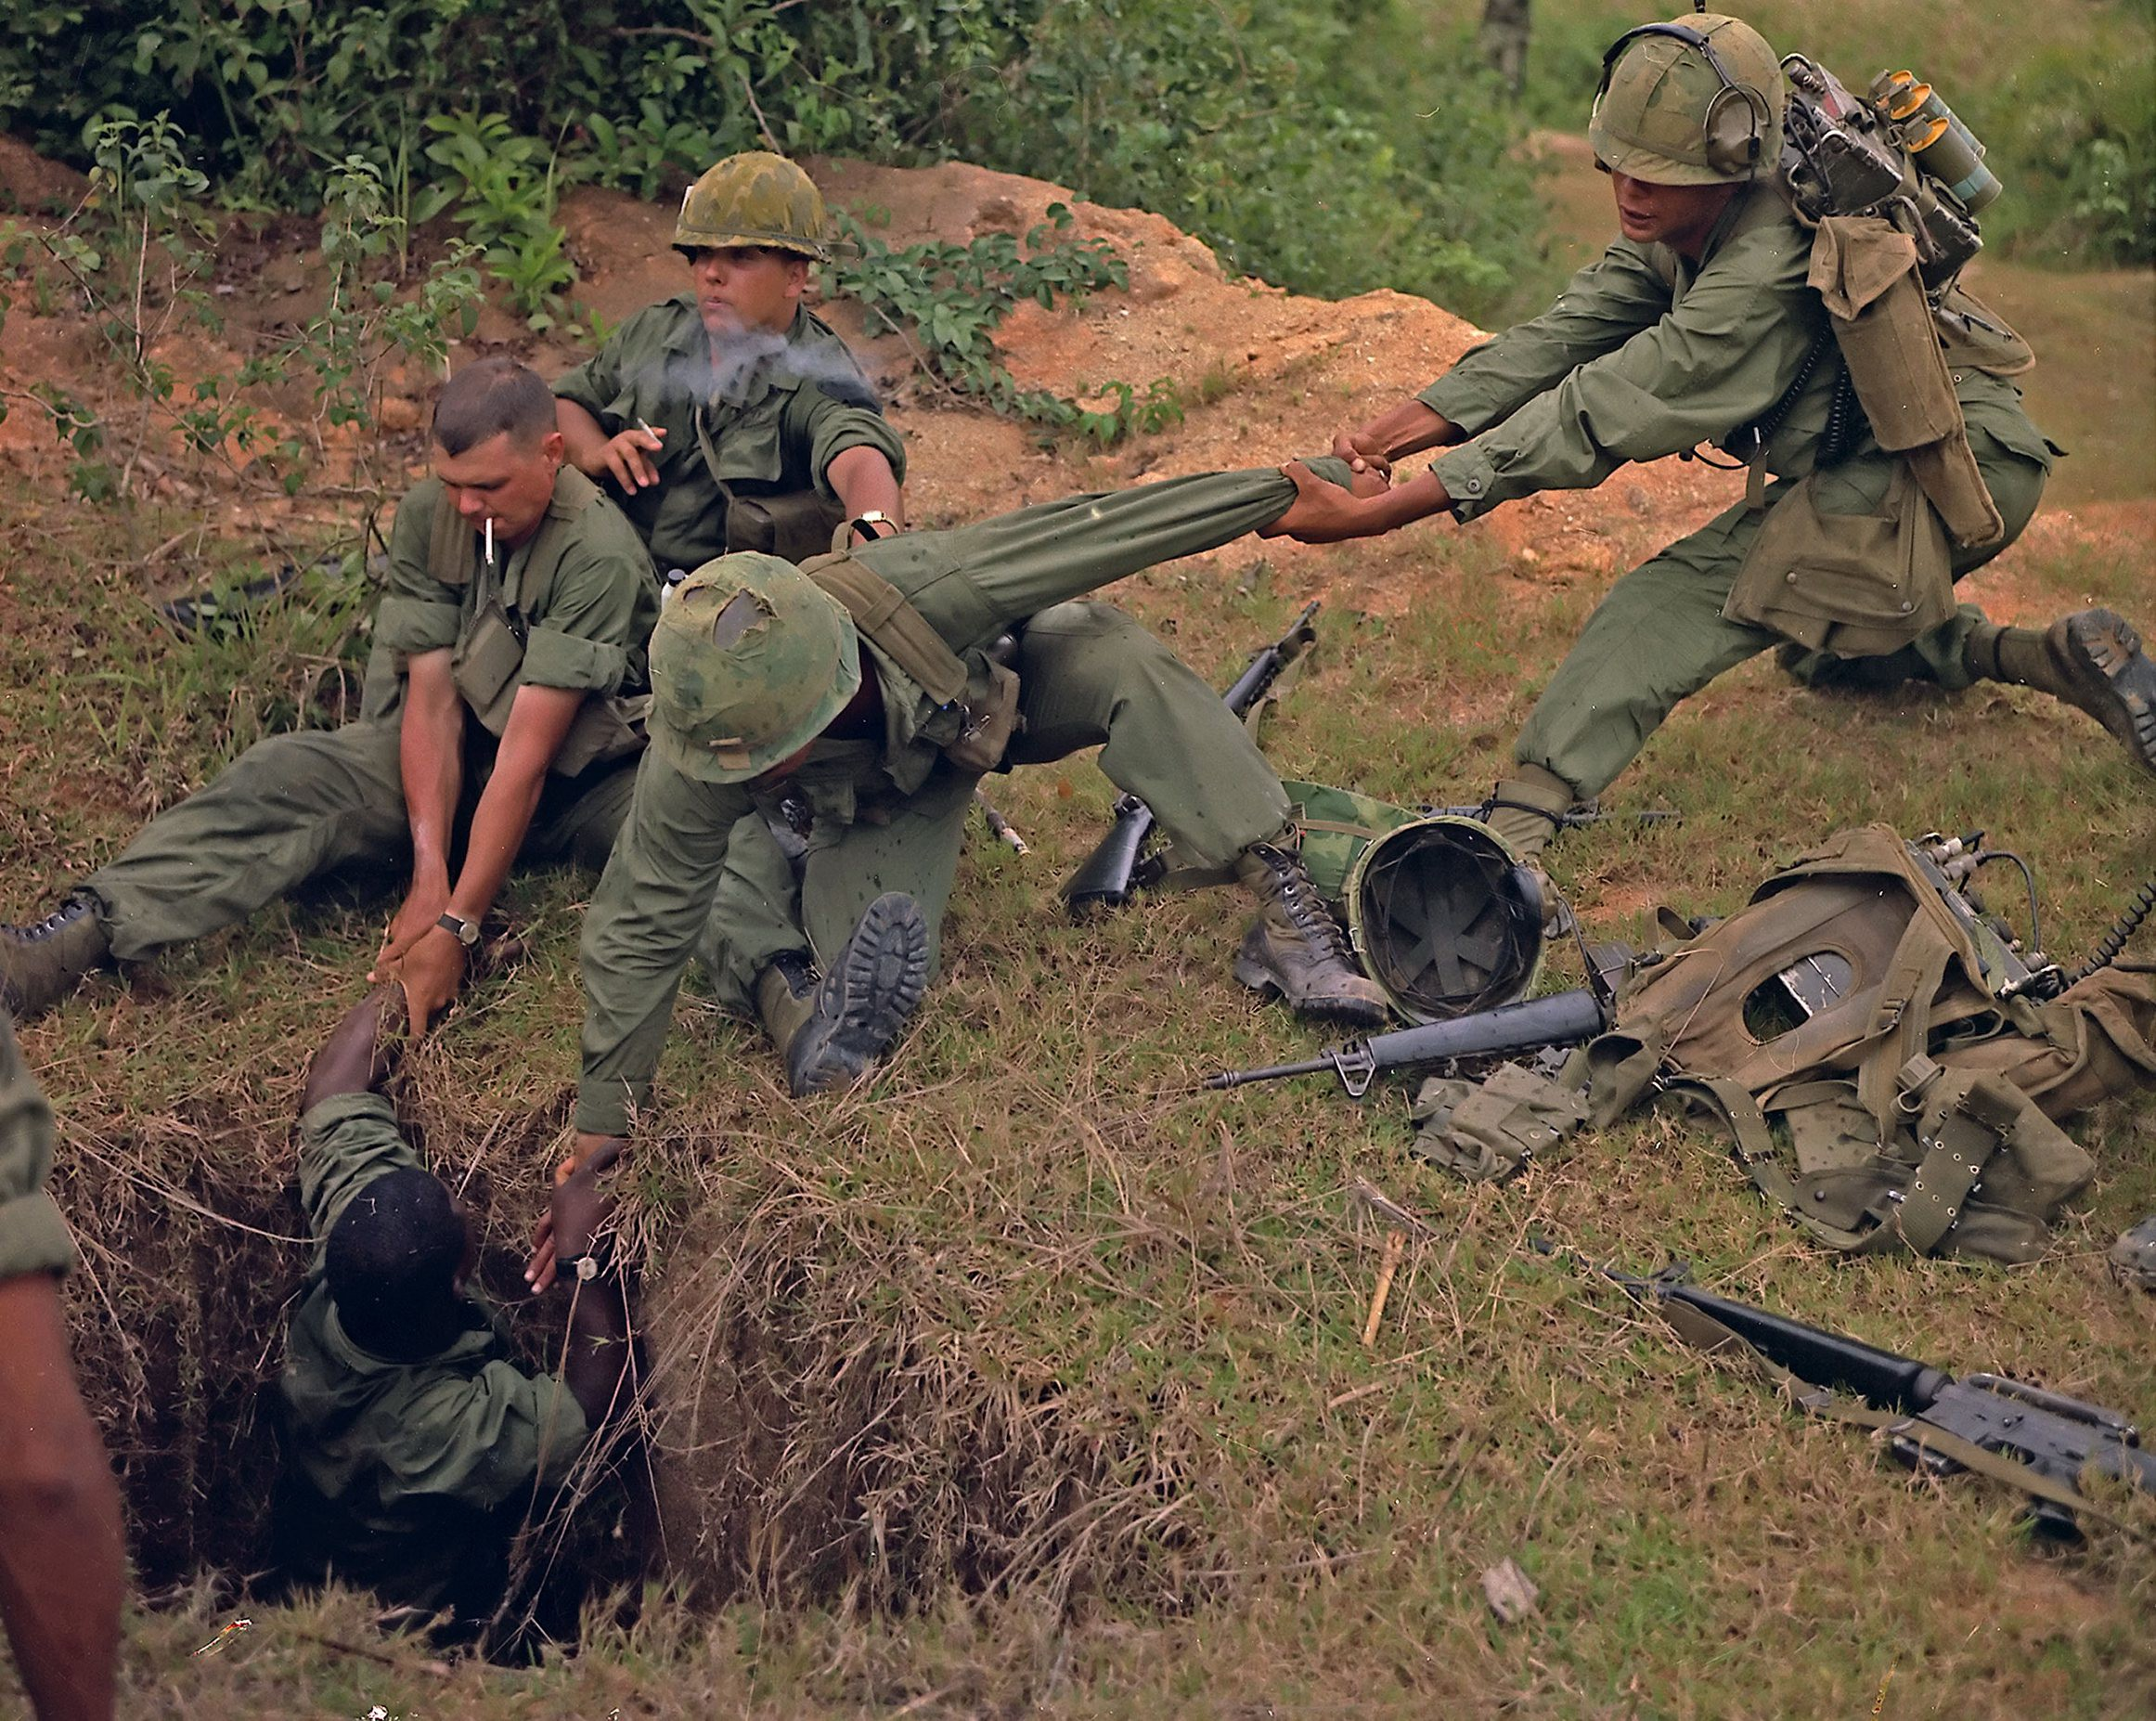 American Troops Tried to Find Viet Cong Tunnels Using